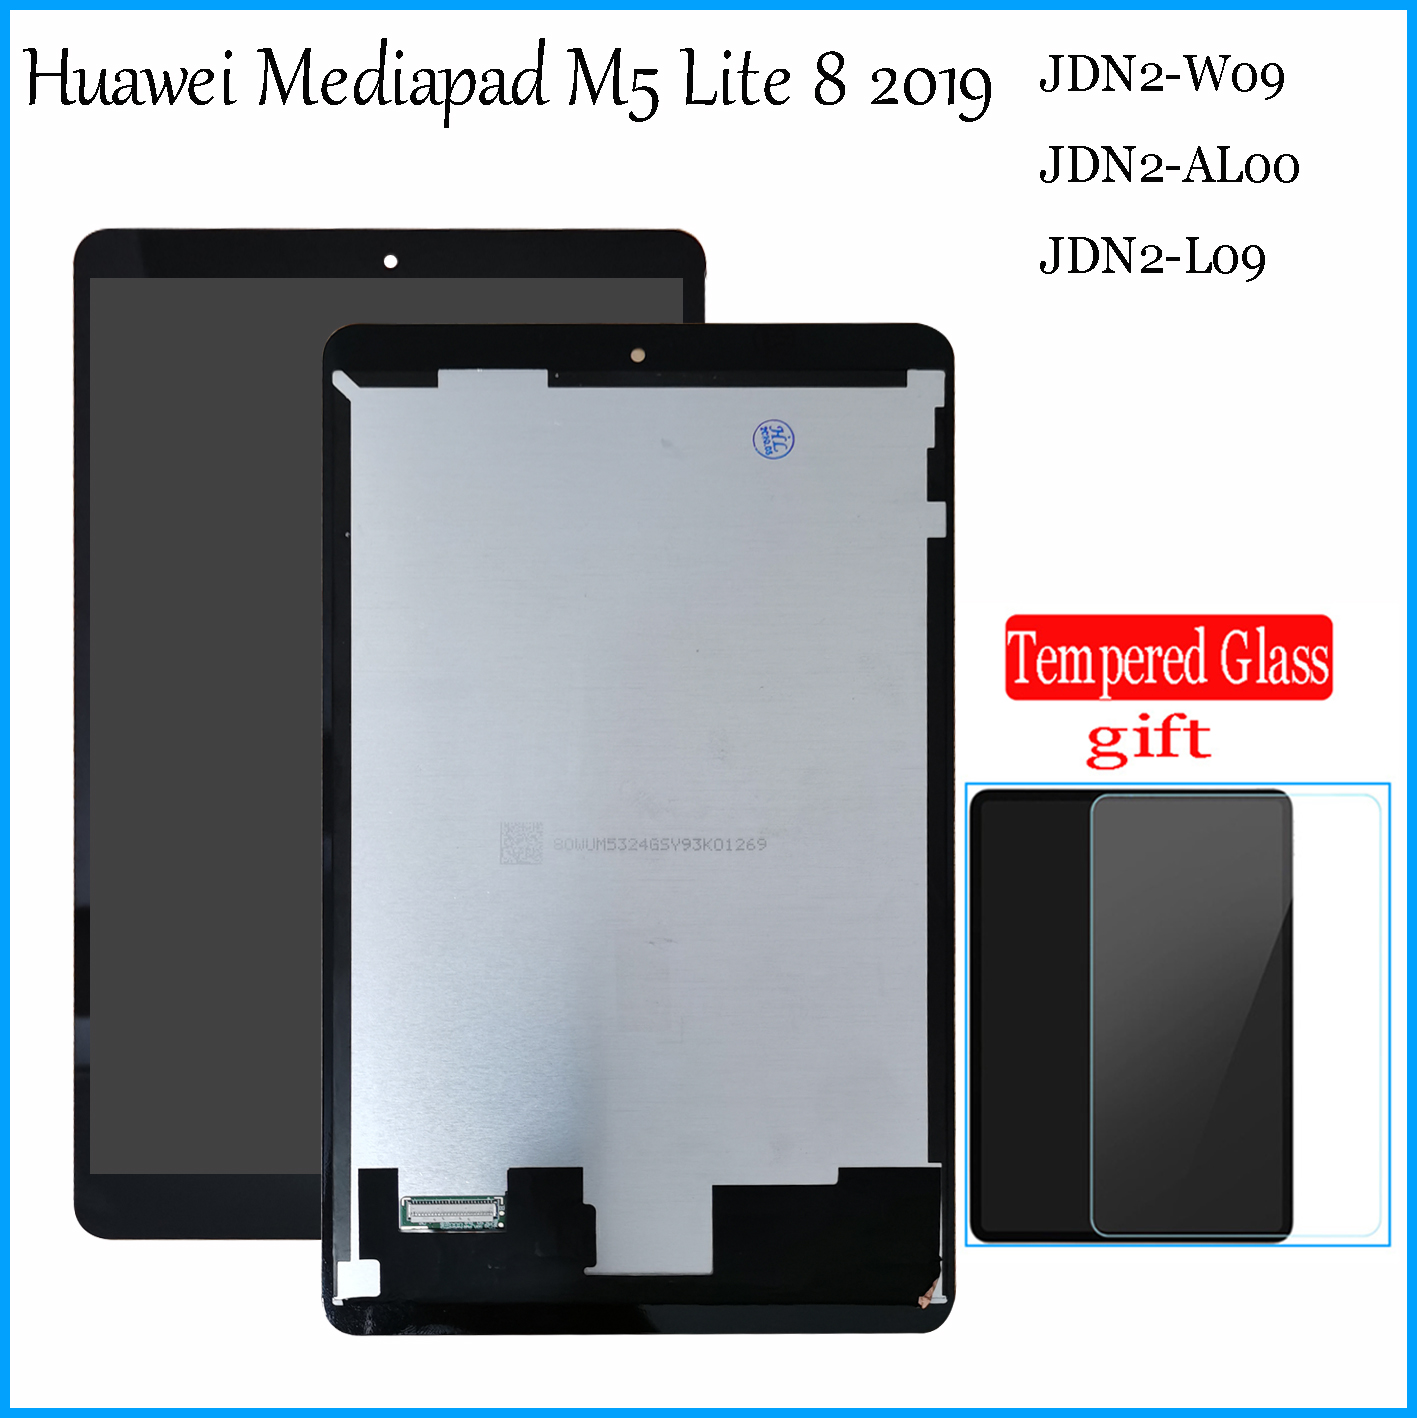 New 8 0Inch For Huawei Mediapad M5 Lite 8 2019 JDN2-W09 JDN2-AL00 JDN2-L09 LCD Display Touch Screen Digitizer Assembly